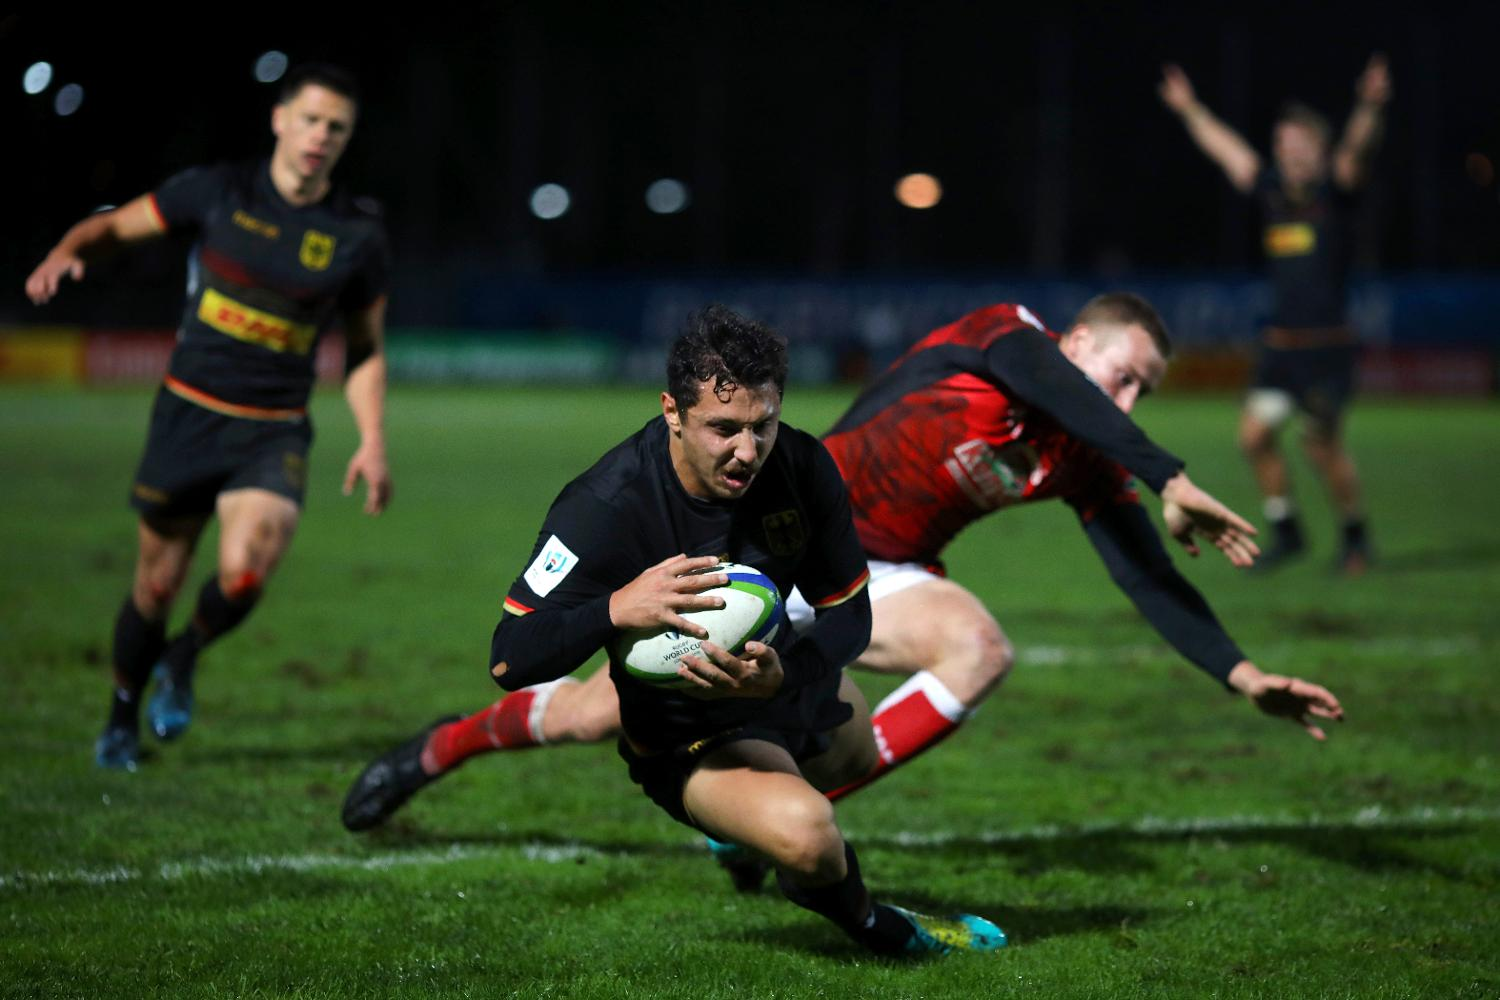 Kenya v Germany - Rugby World Cup 2019 Repechage